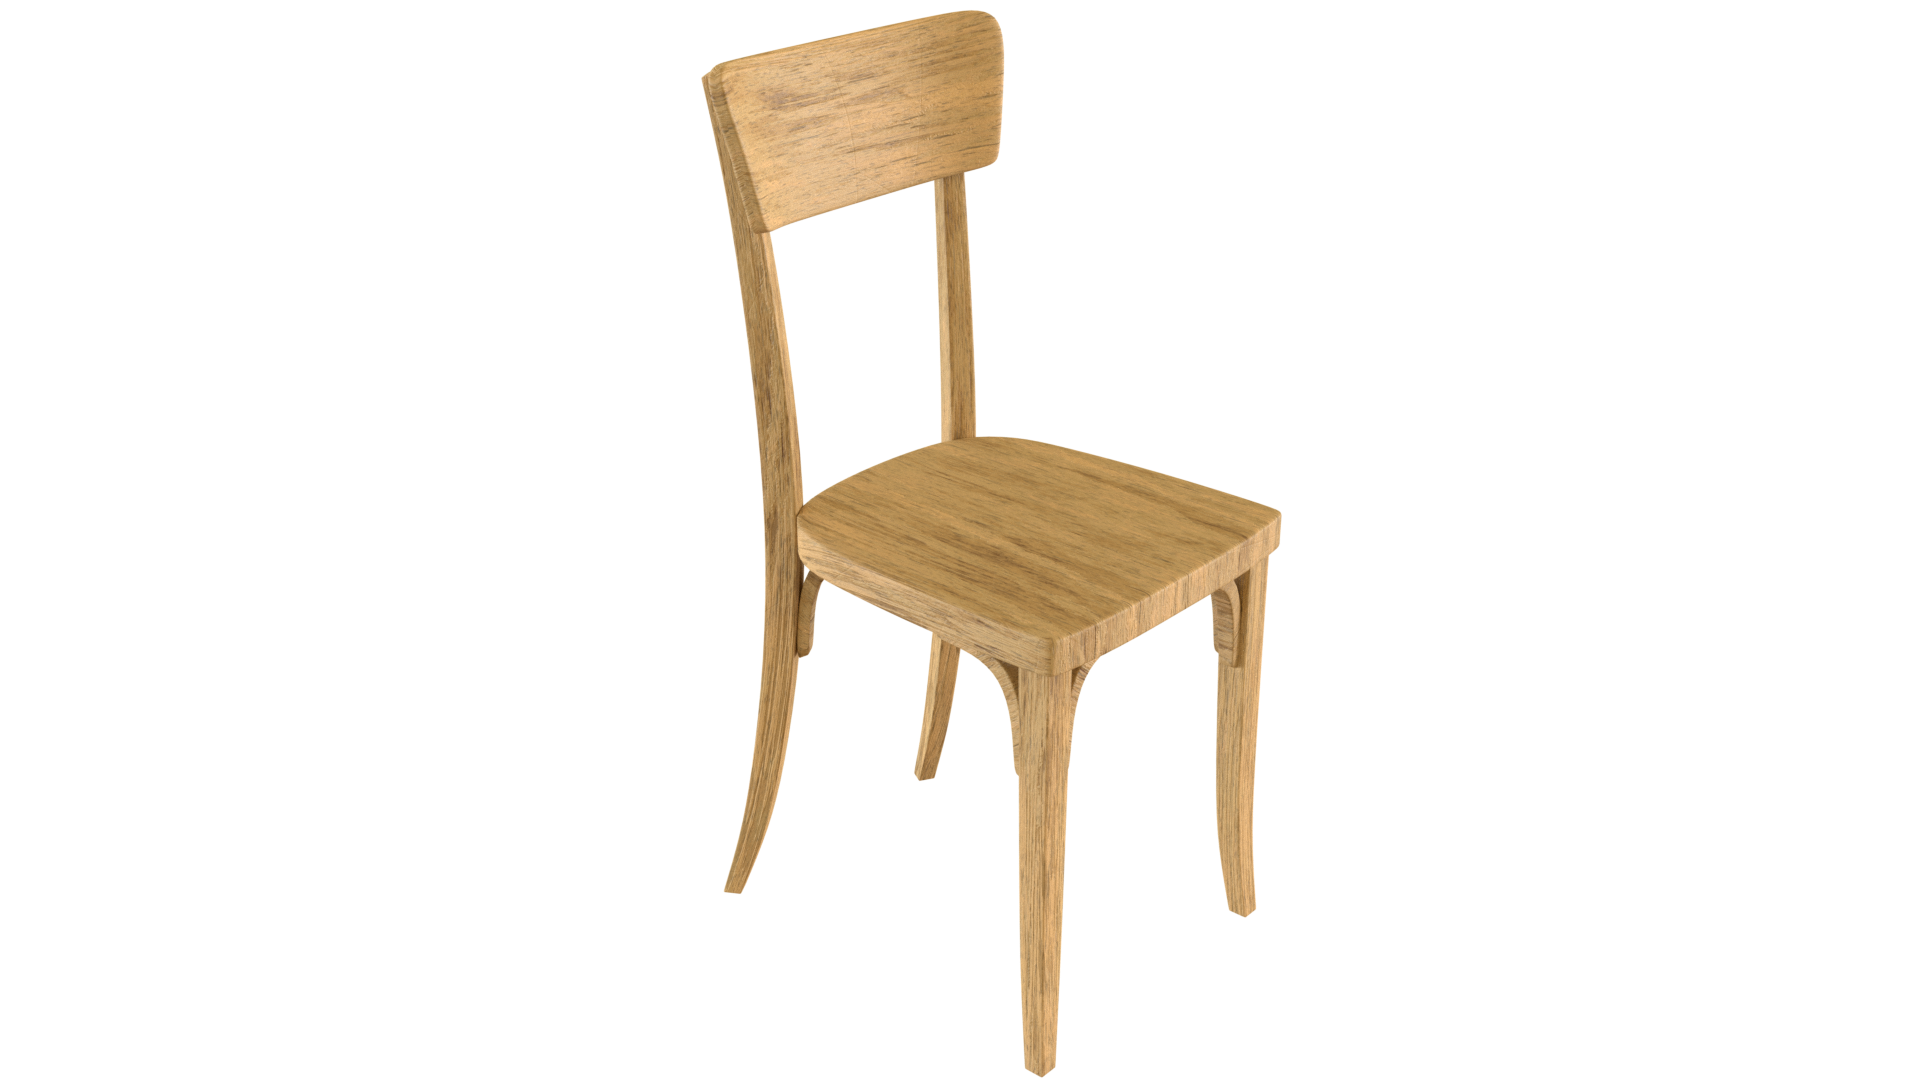 Free 3D Wood Chair CC0 3DS - Free 3D Models Under Public Domain